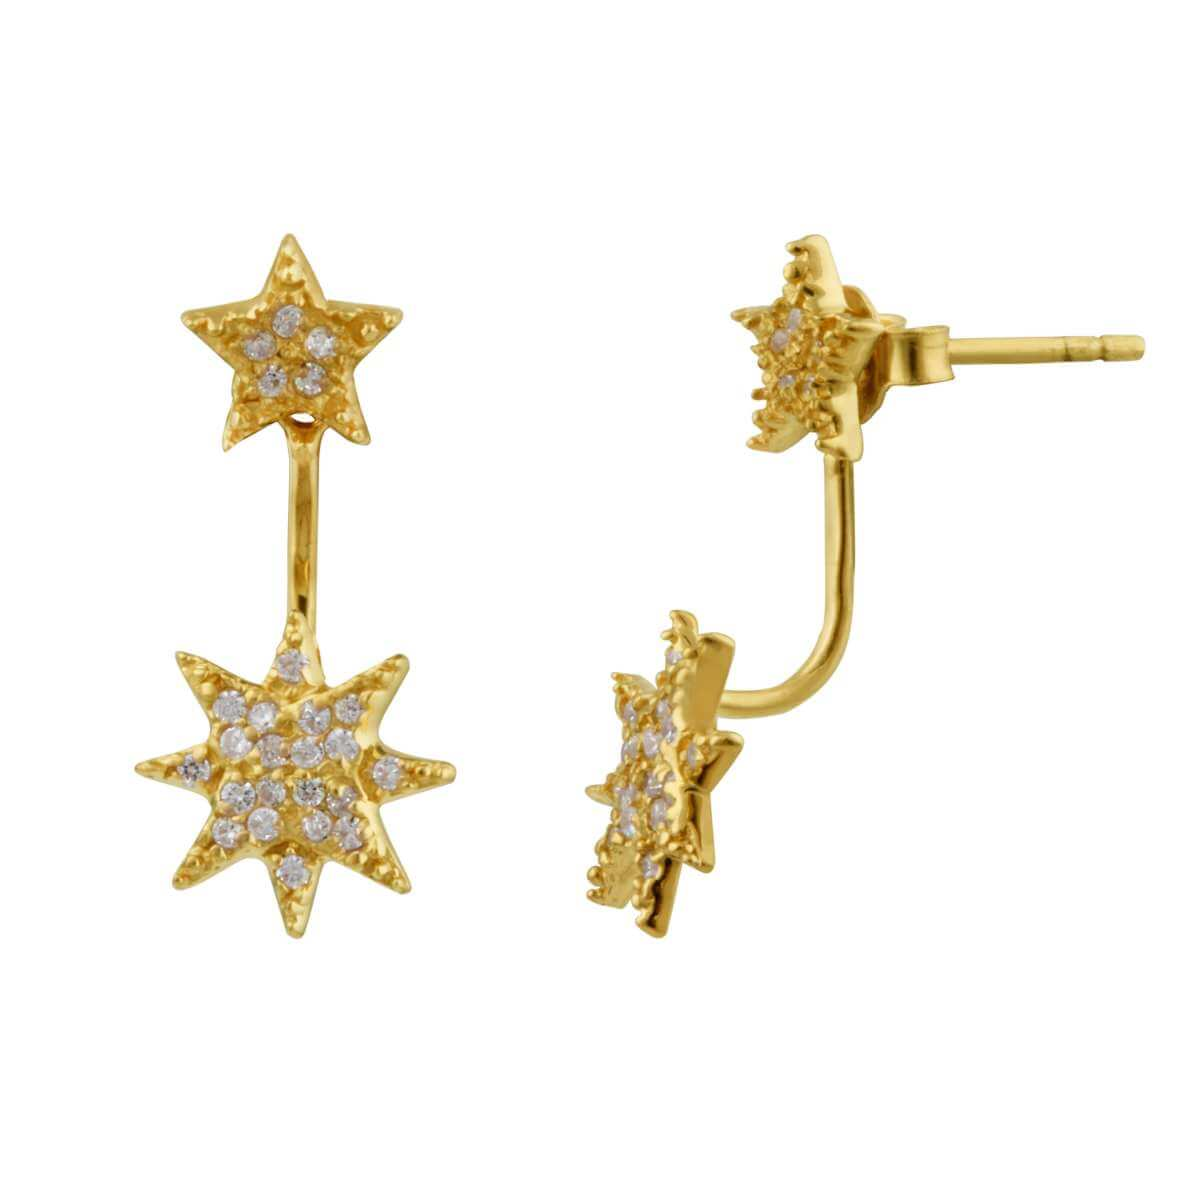 Gold Plated Sterling Silver CZ Starburst Jacket Stud Earrings